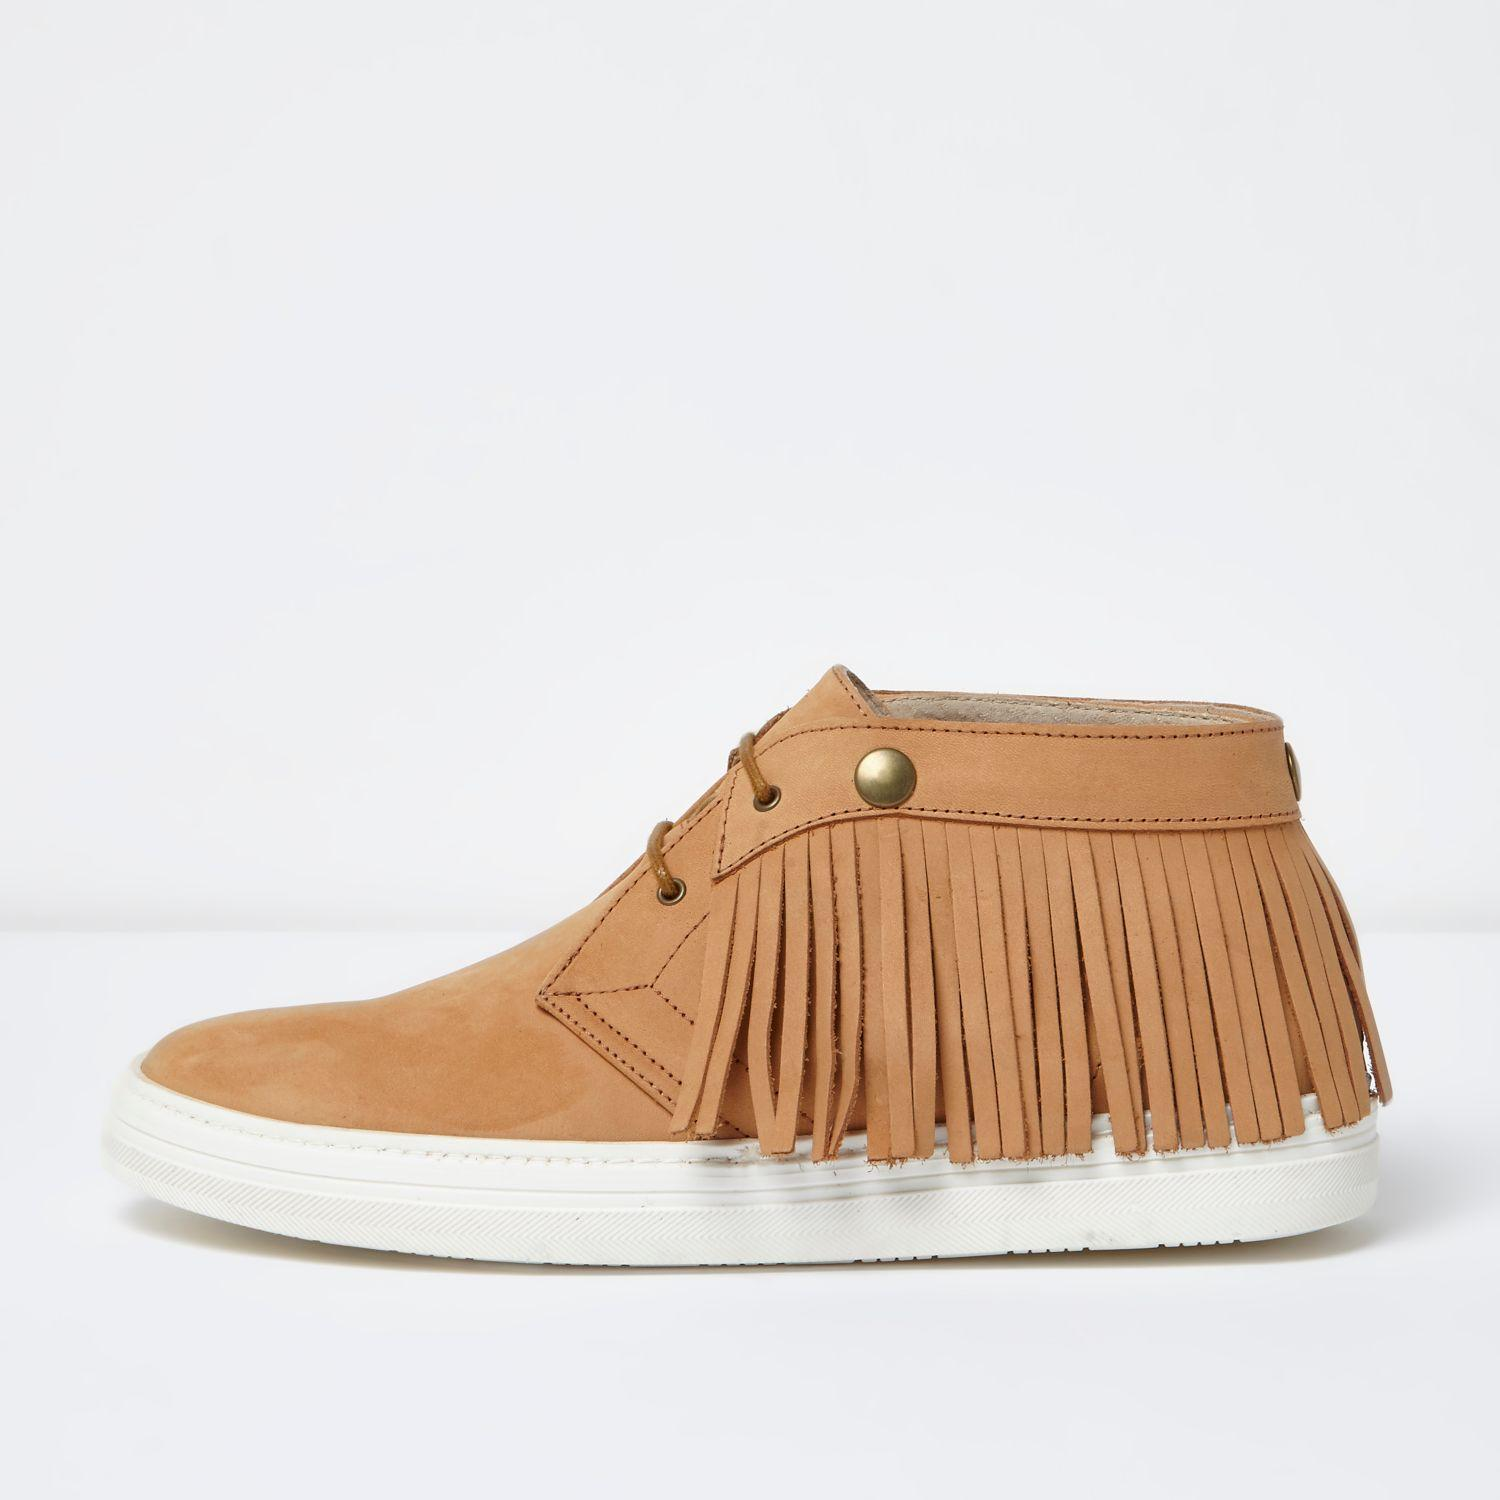 River Island Nubuck Leather Desert Boots